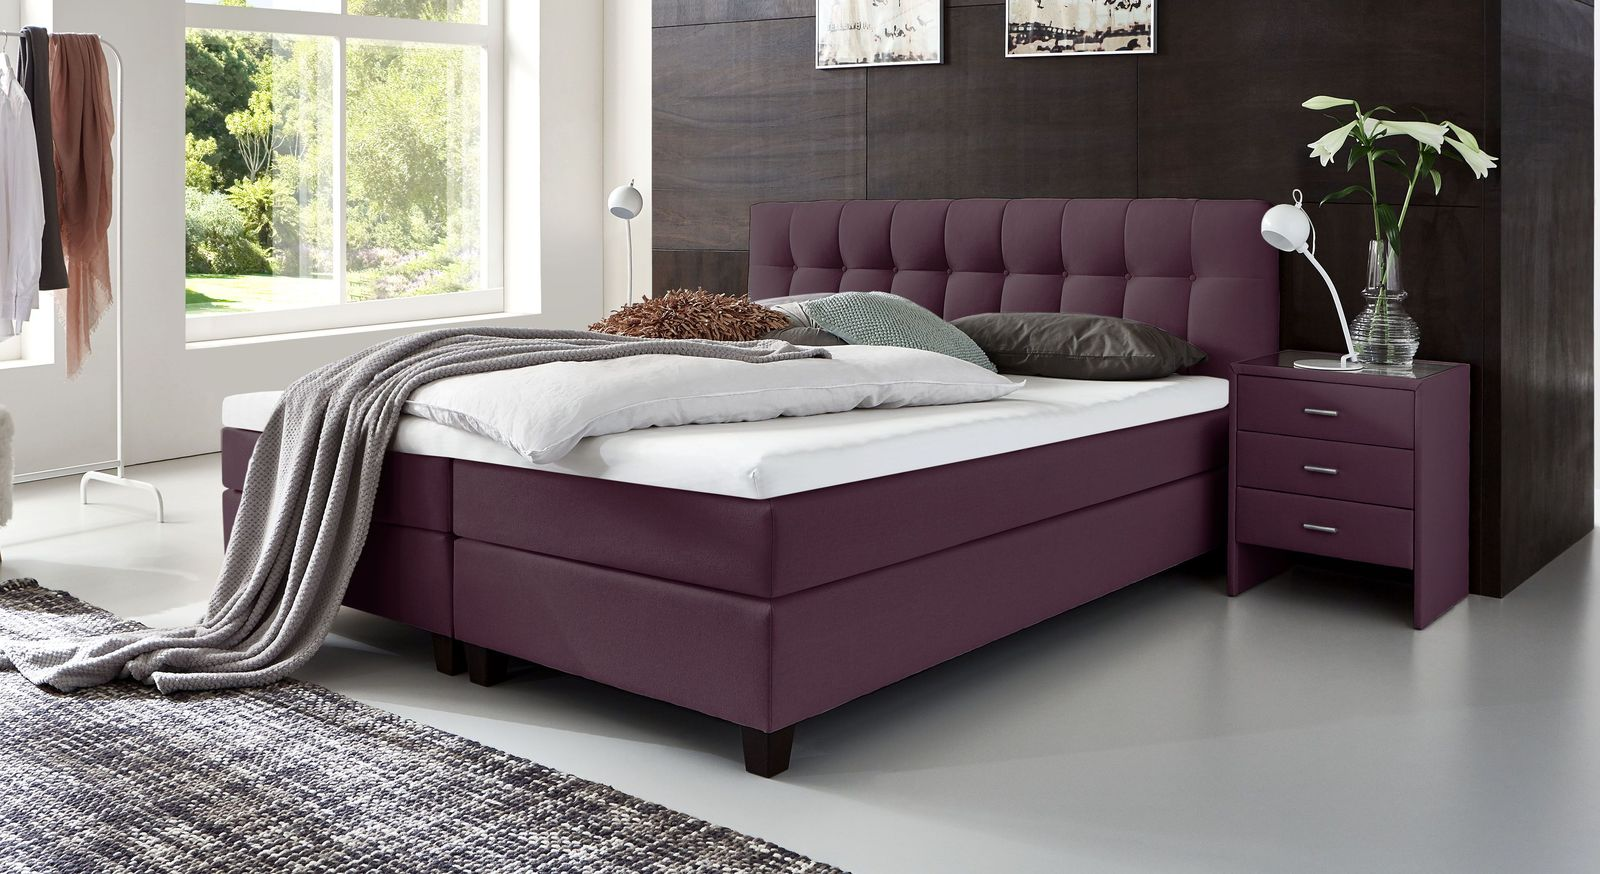 53 cm hohes Boxspringbett Luciano aus Webstoff in Beere